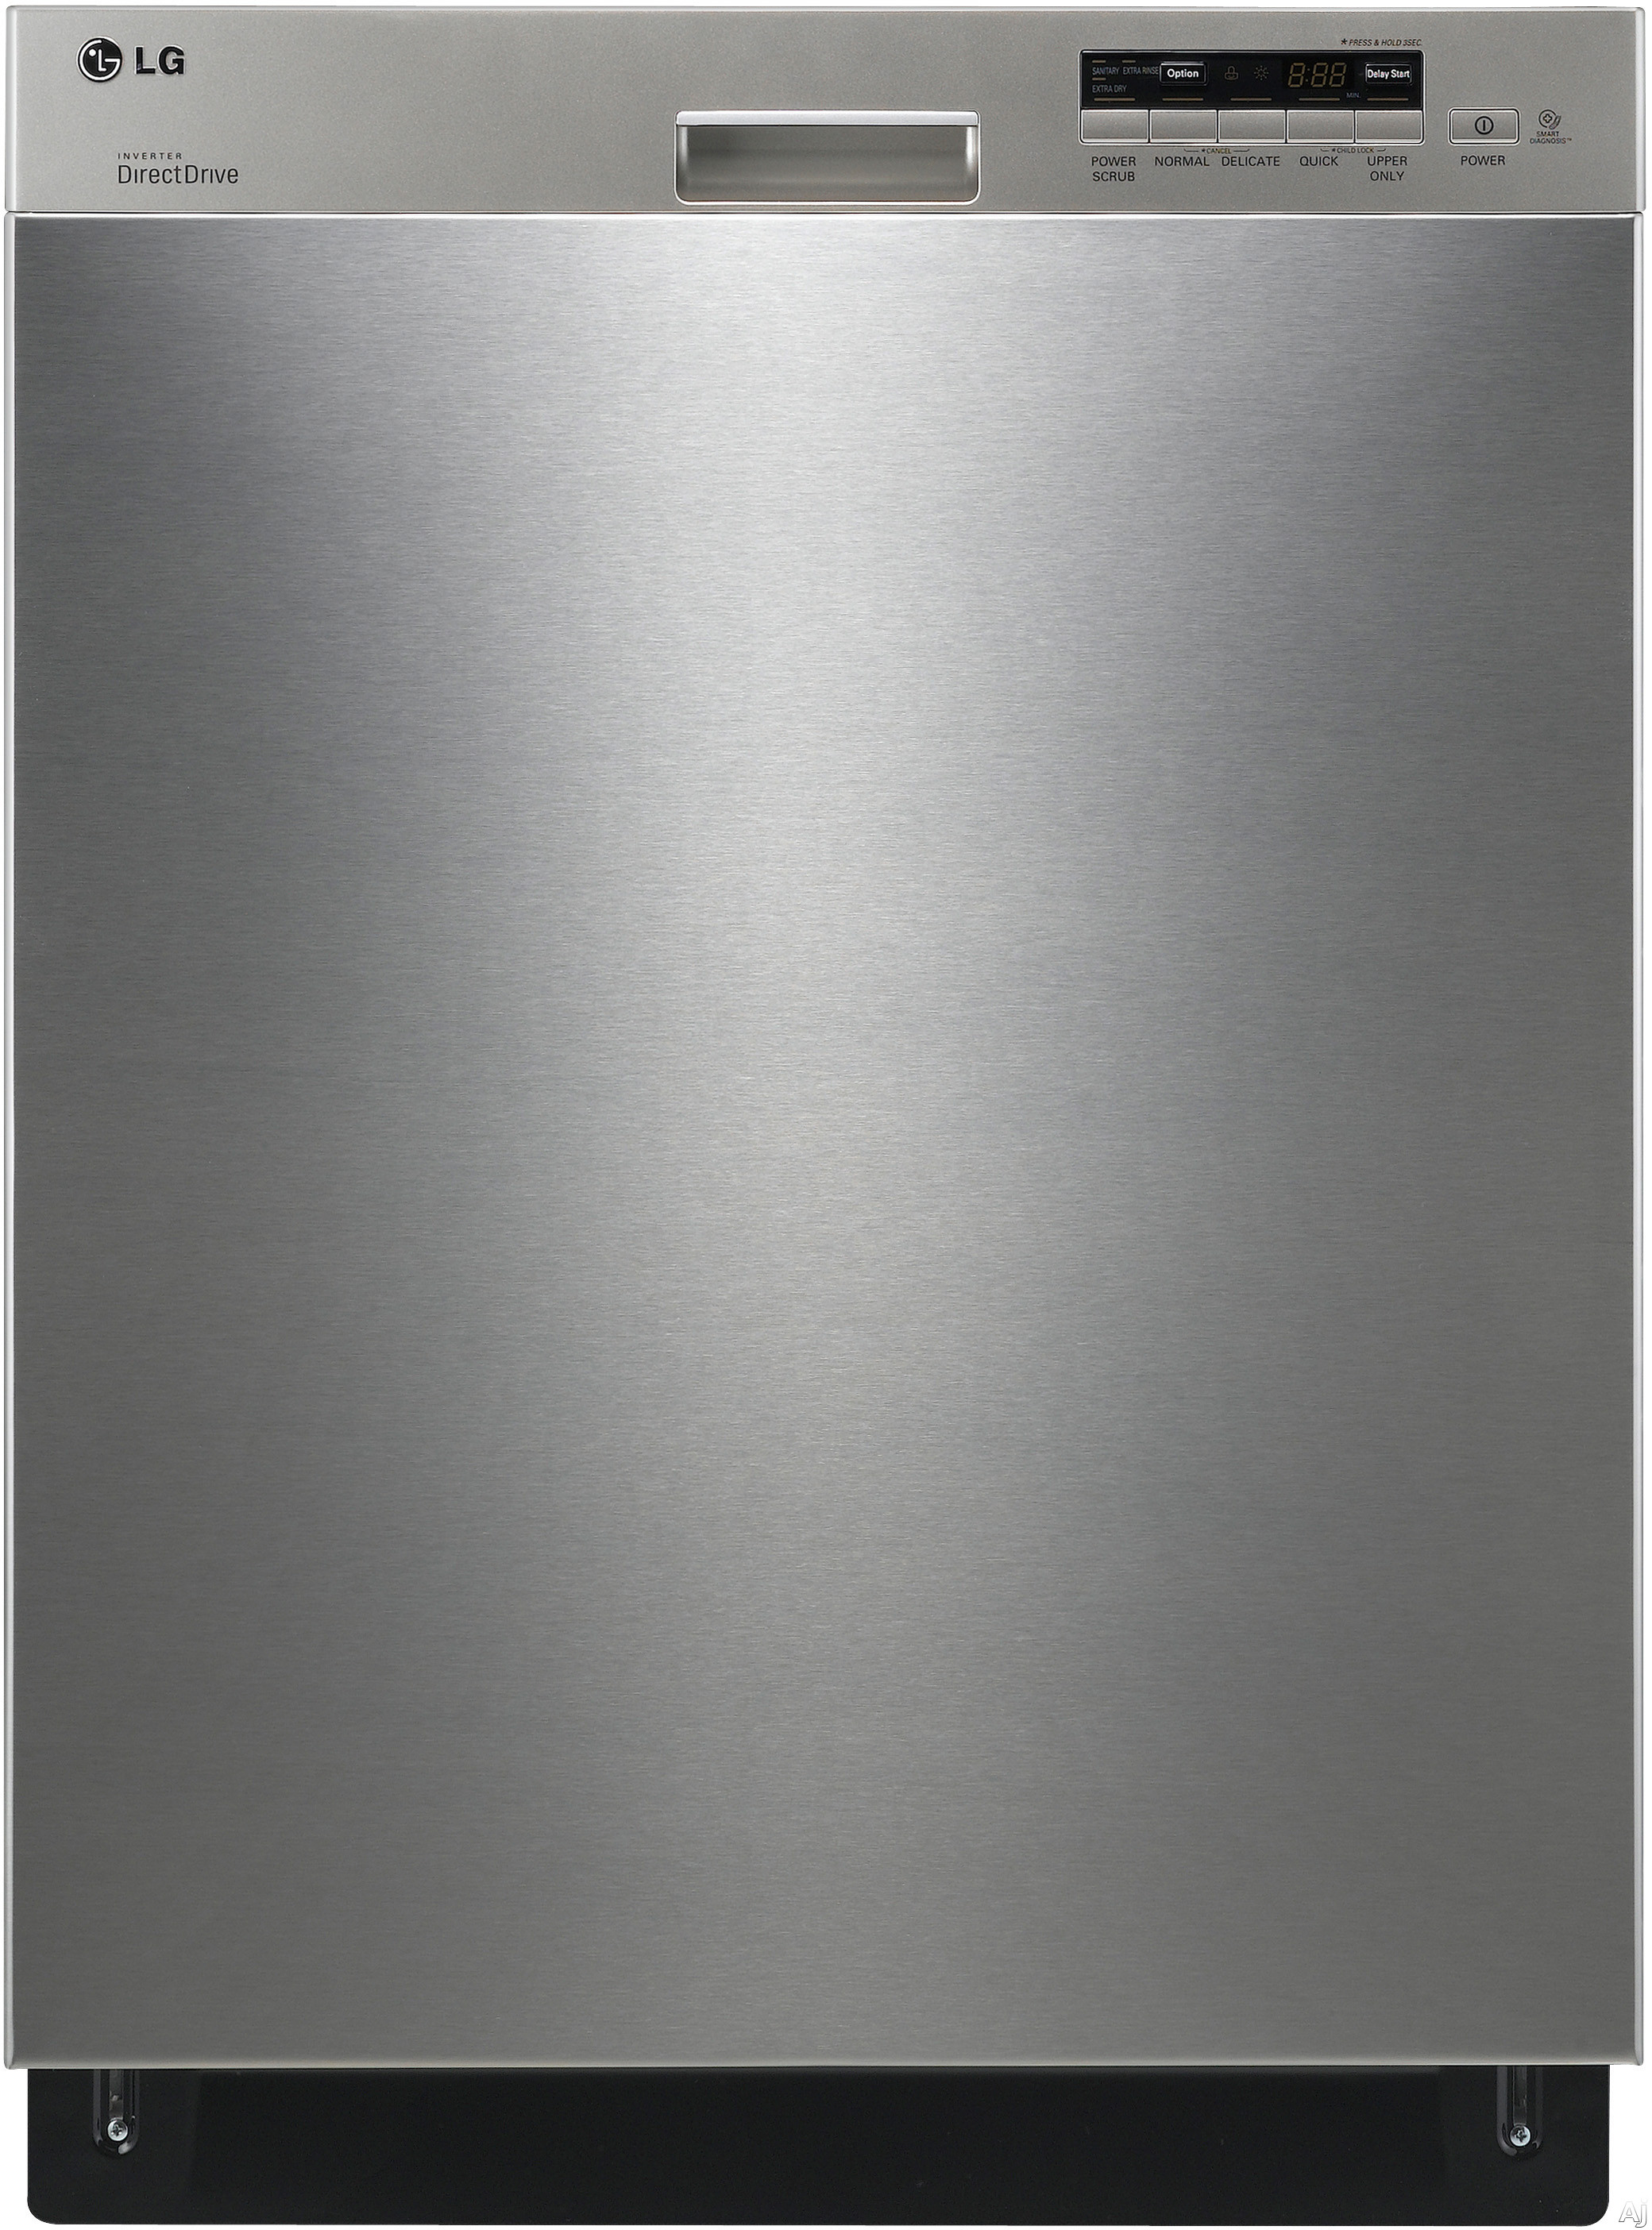 Countertop Dishwasher Lg : LG LDS5040ST Semi-Integrated Dishwasher with 5 Wash Cycles, 2 Spray ...